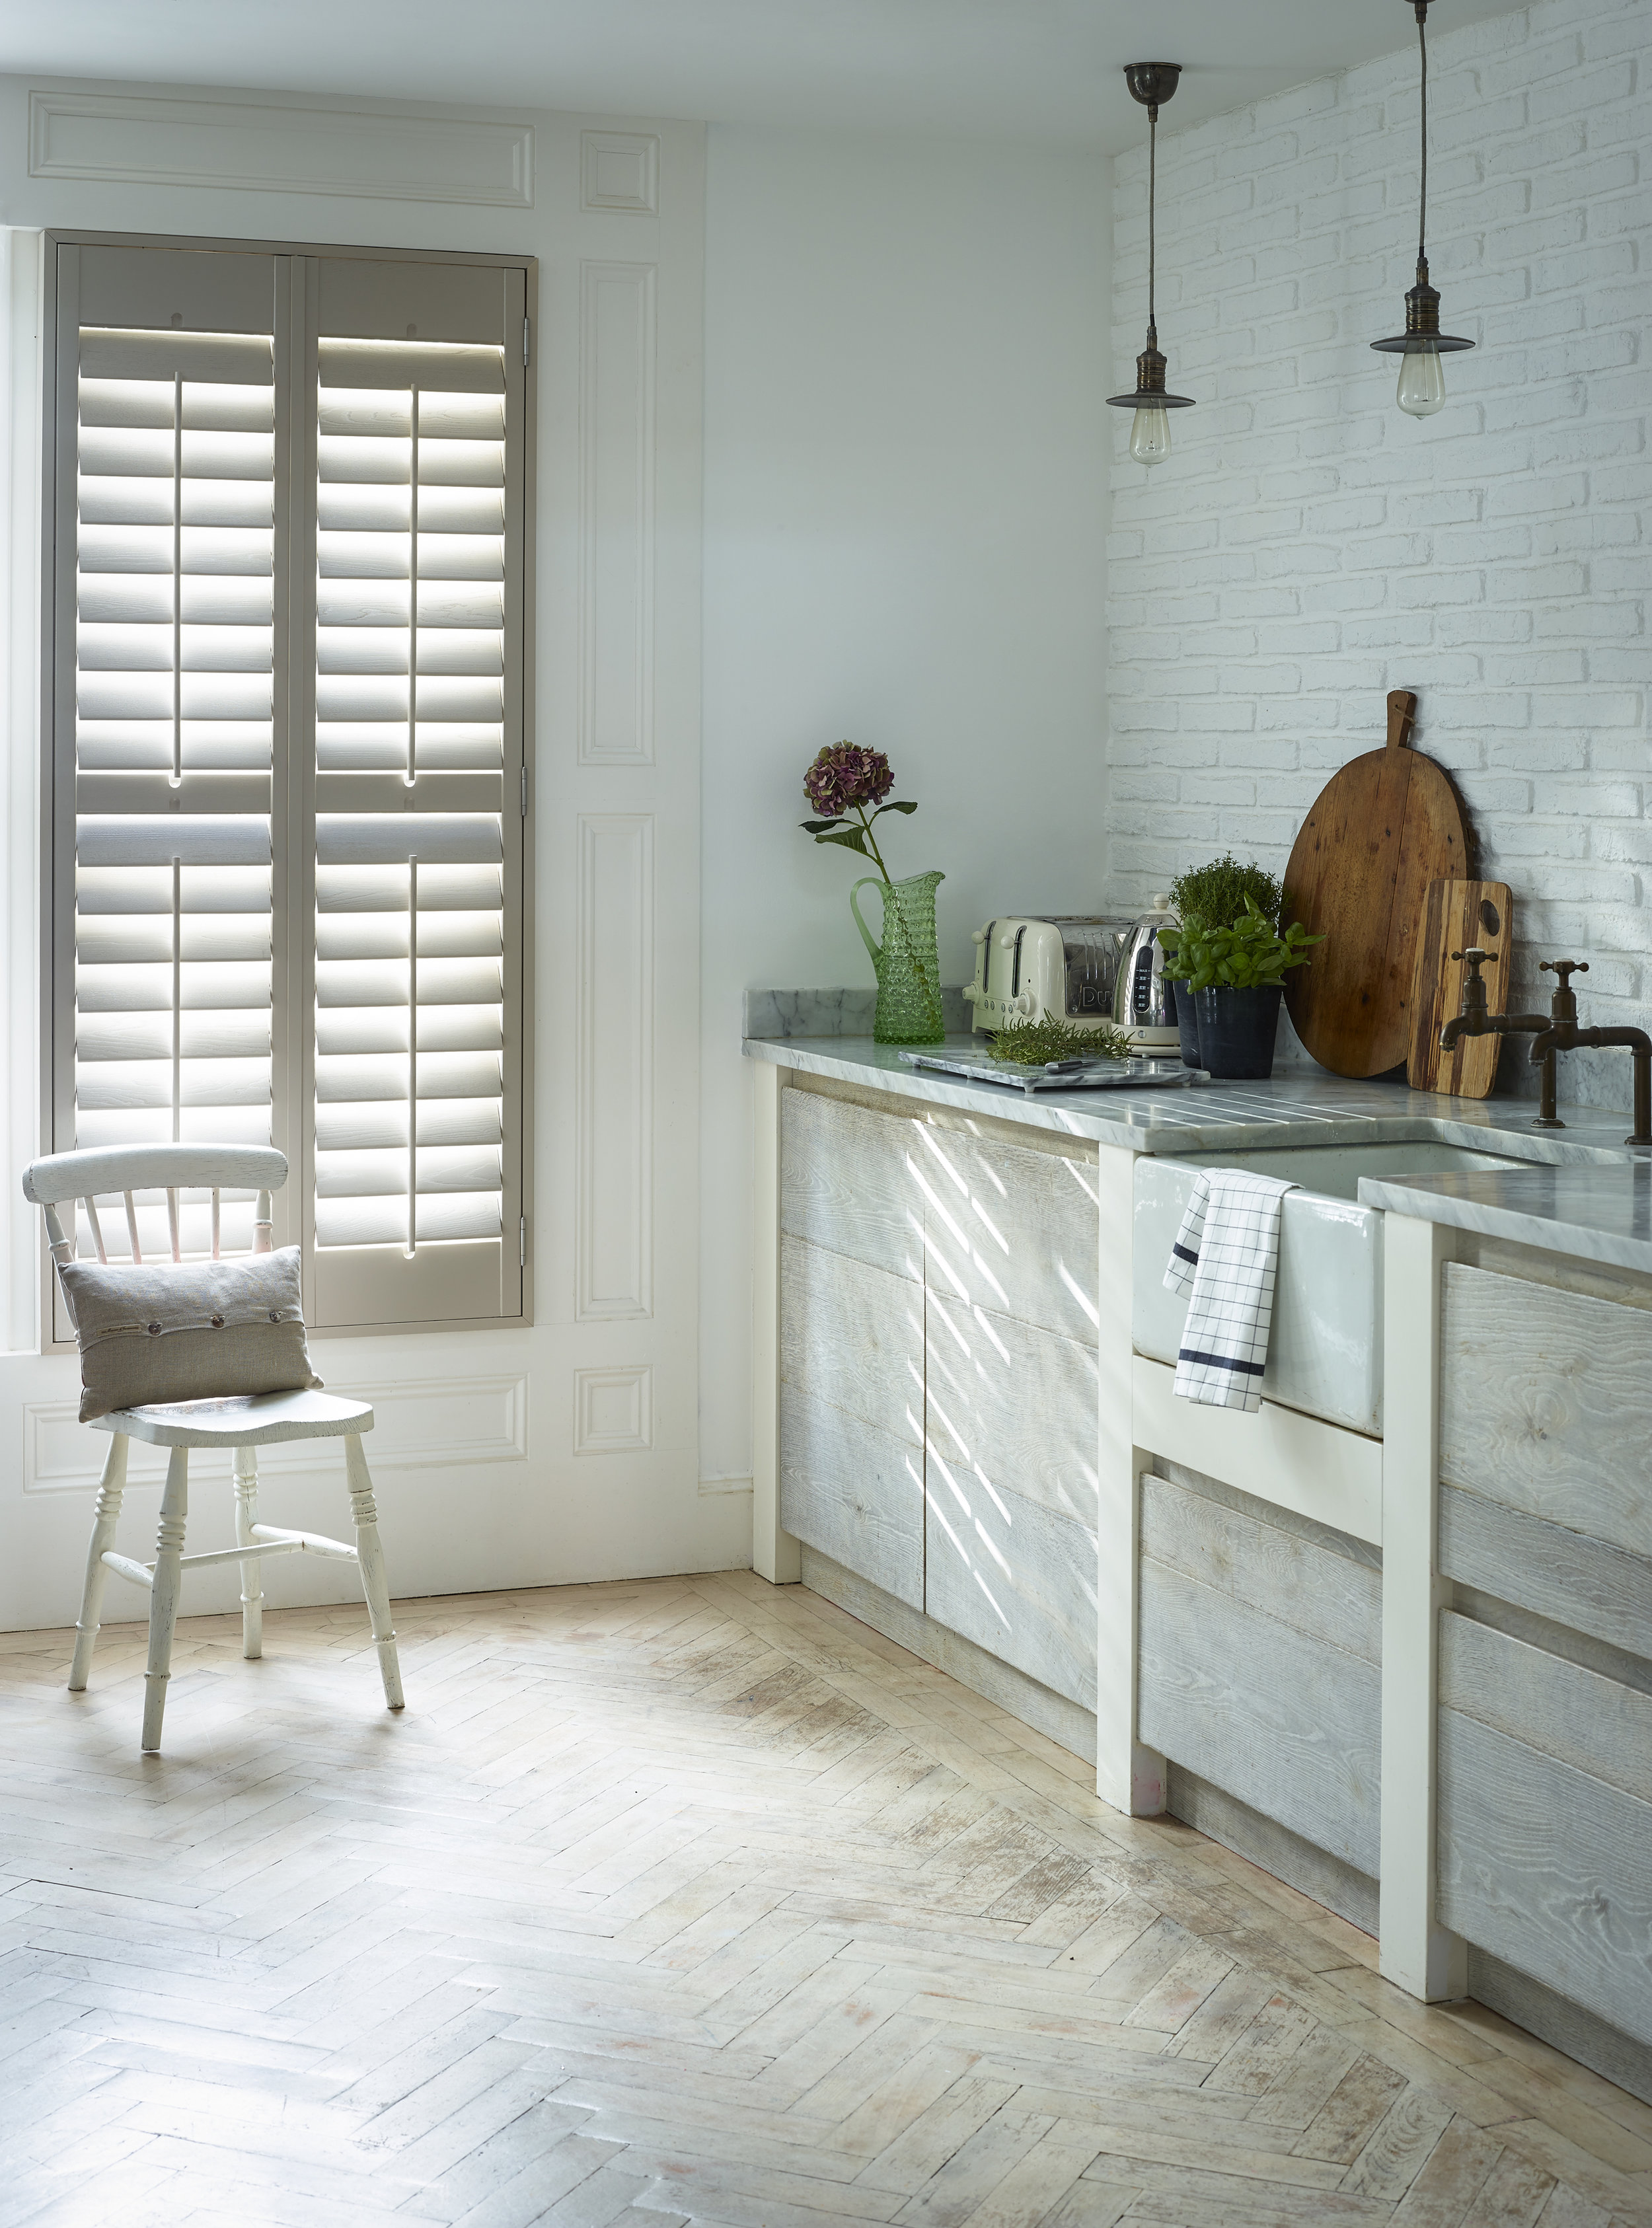 Plantation Window Shutters -  Different louvre sizes bring different benefits to different rooms. Smaller slats reduce light levels; larger ones permit more privacy for large or overlooked windows.